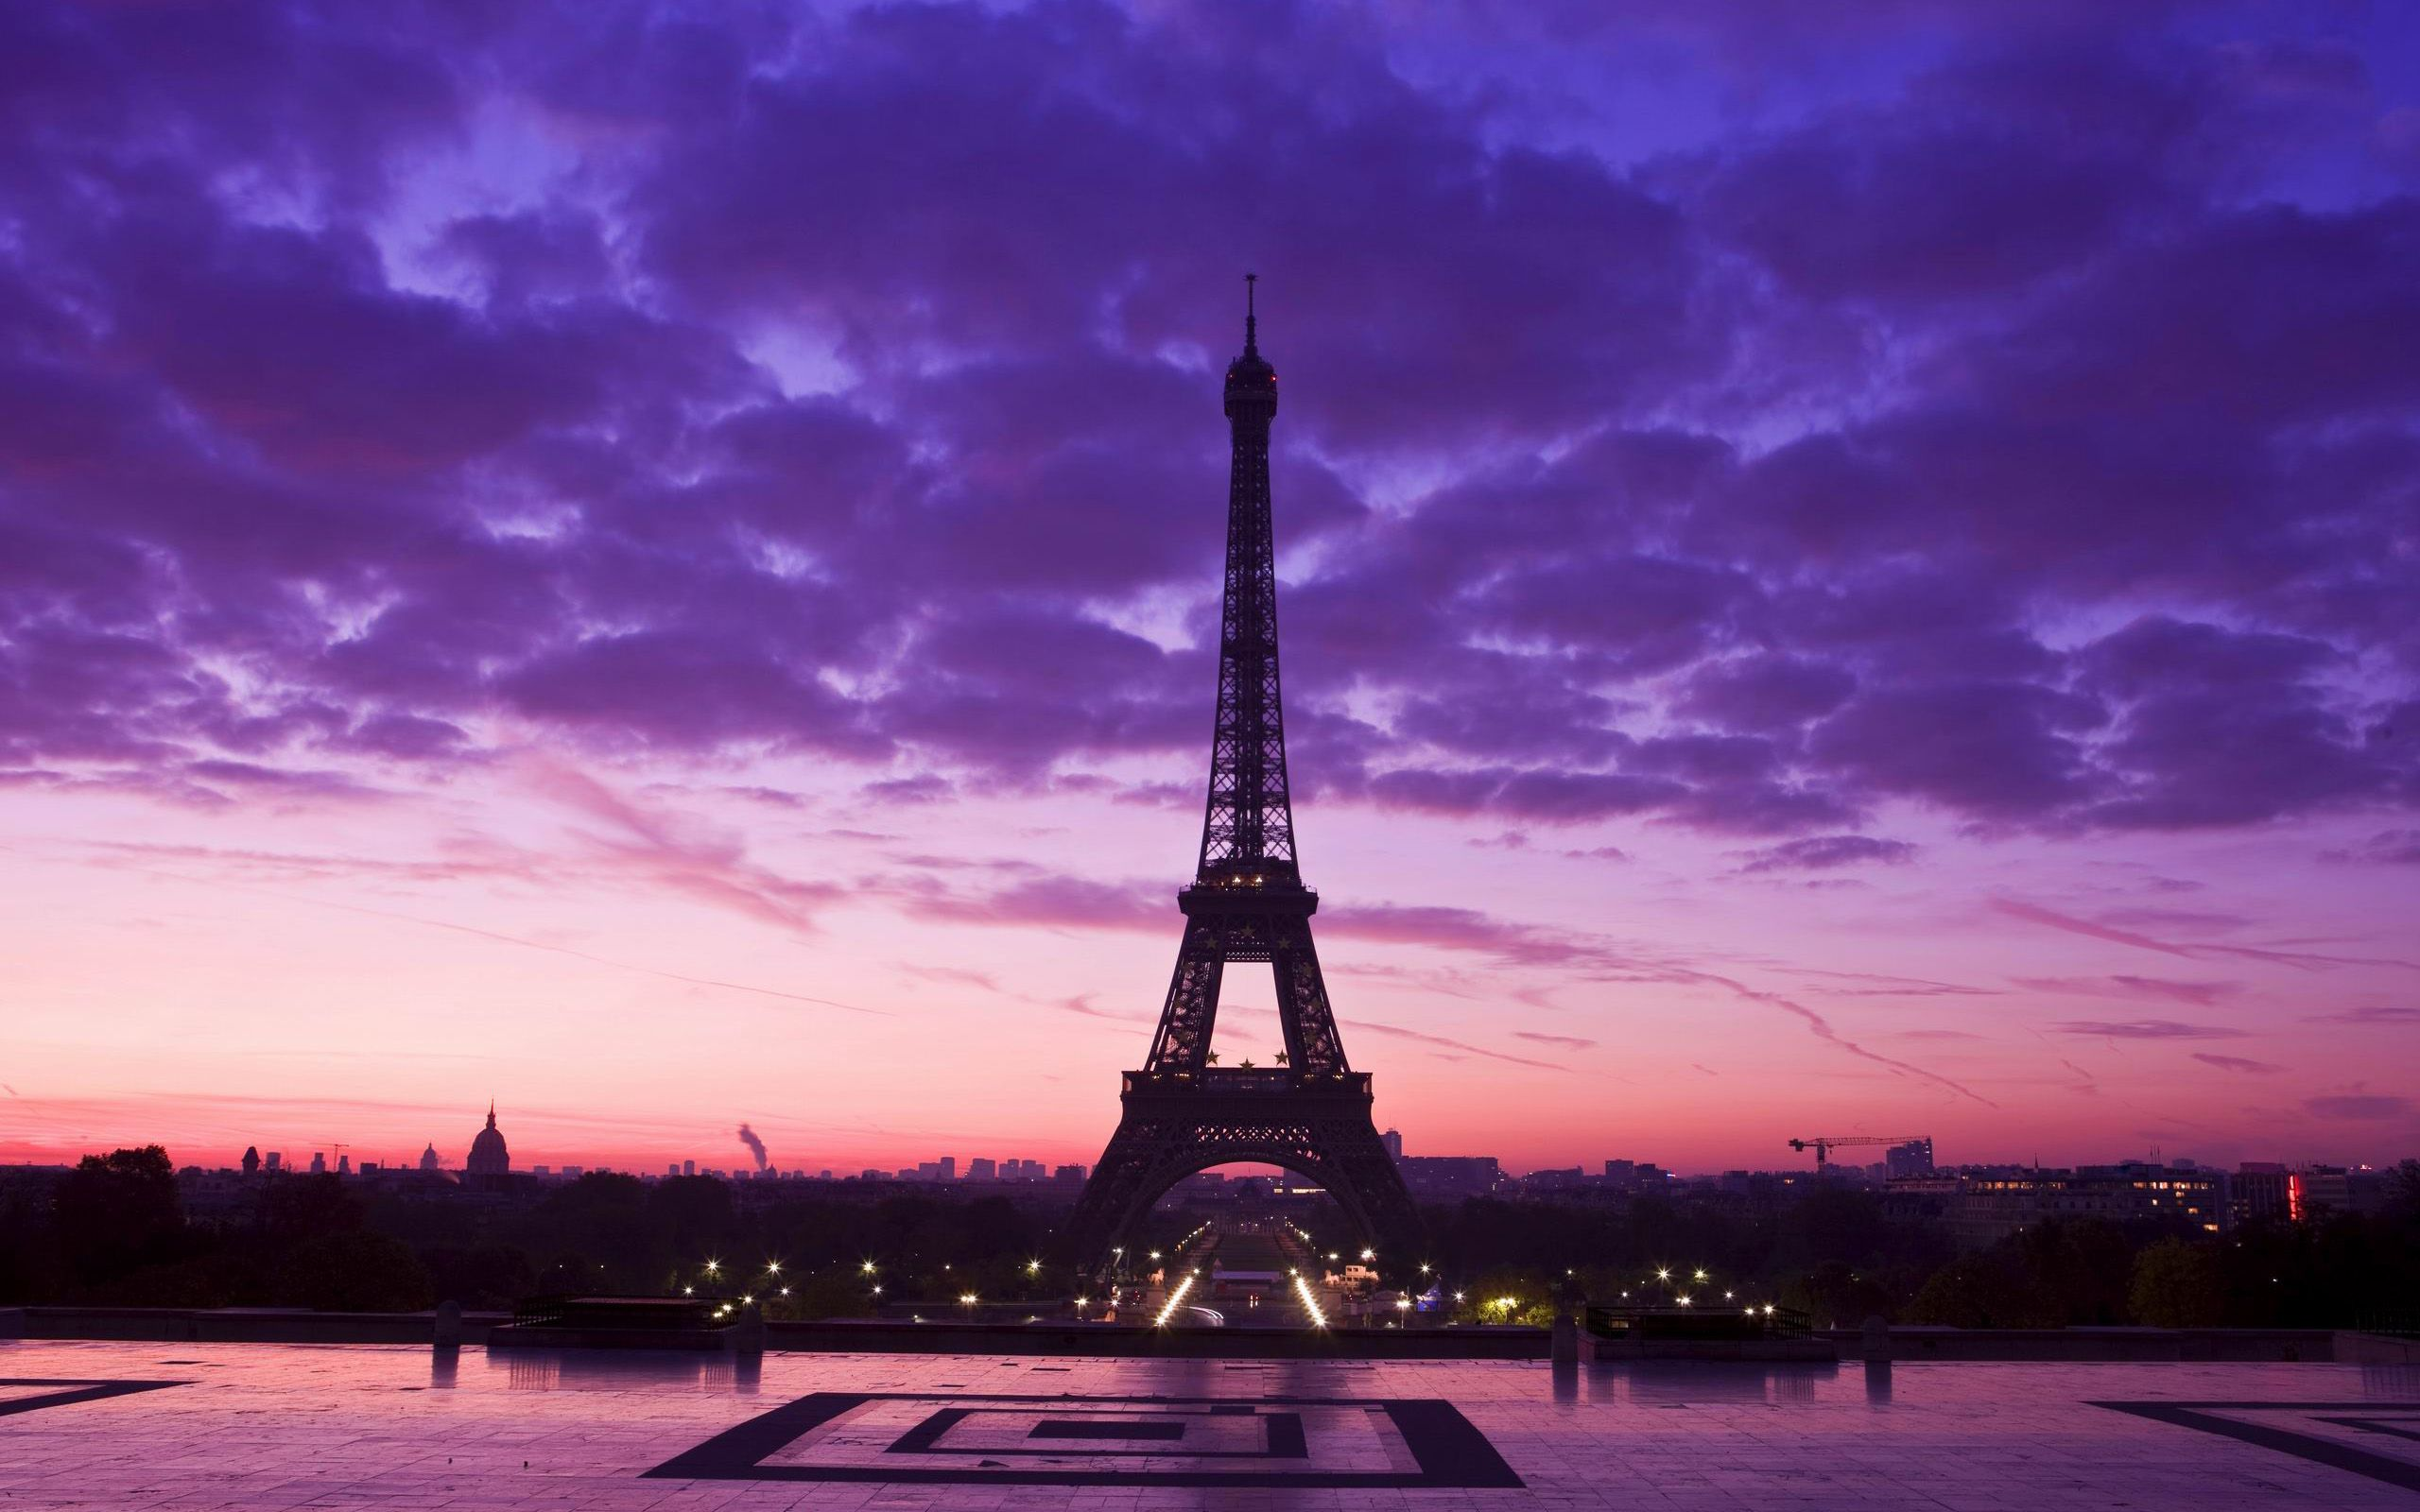 paris wallpapers-get the newest collection of paris wallpapers for